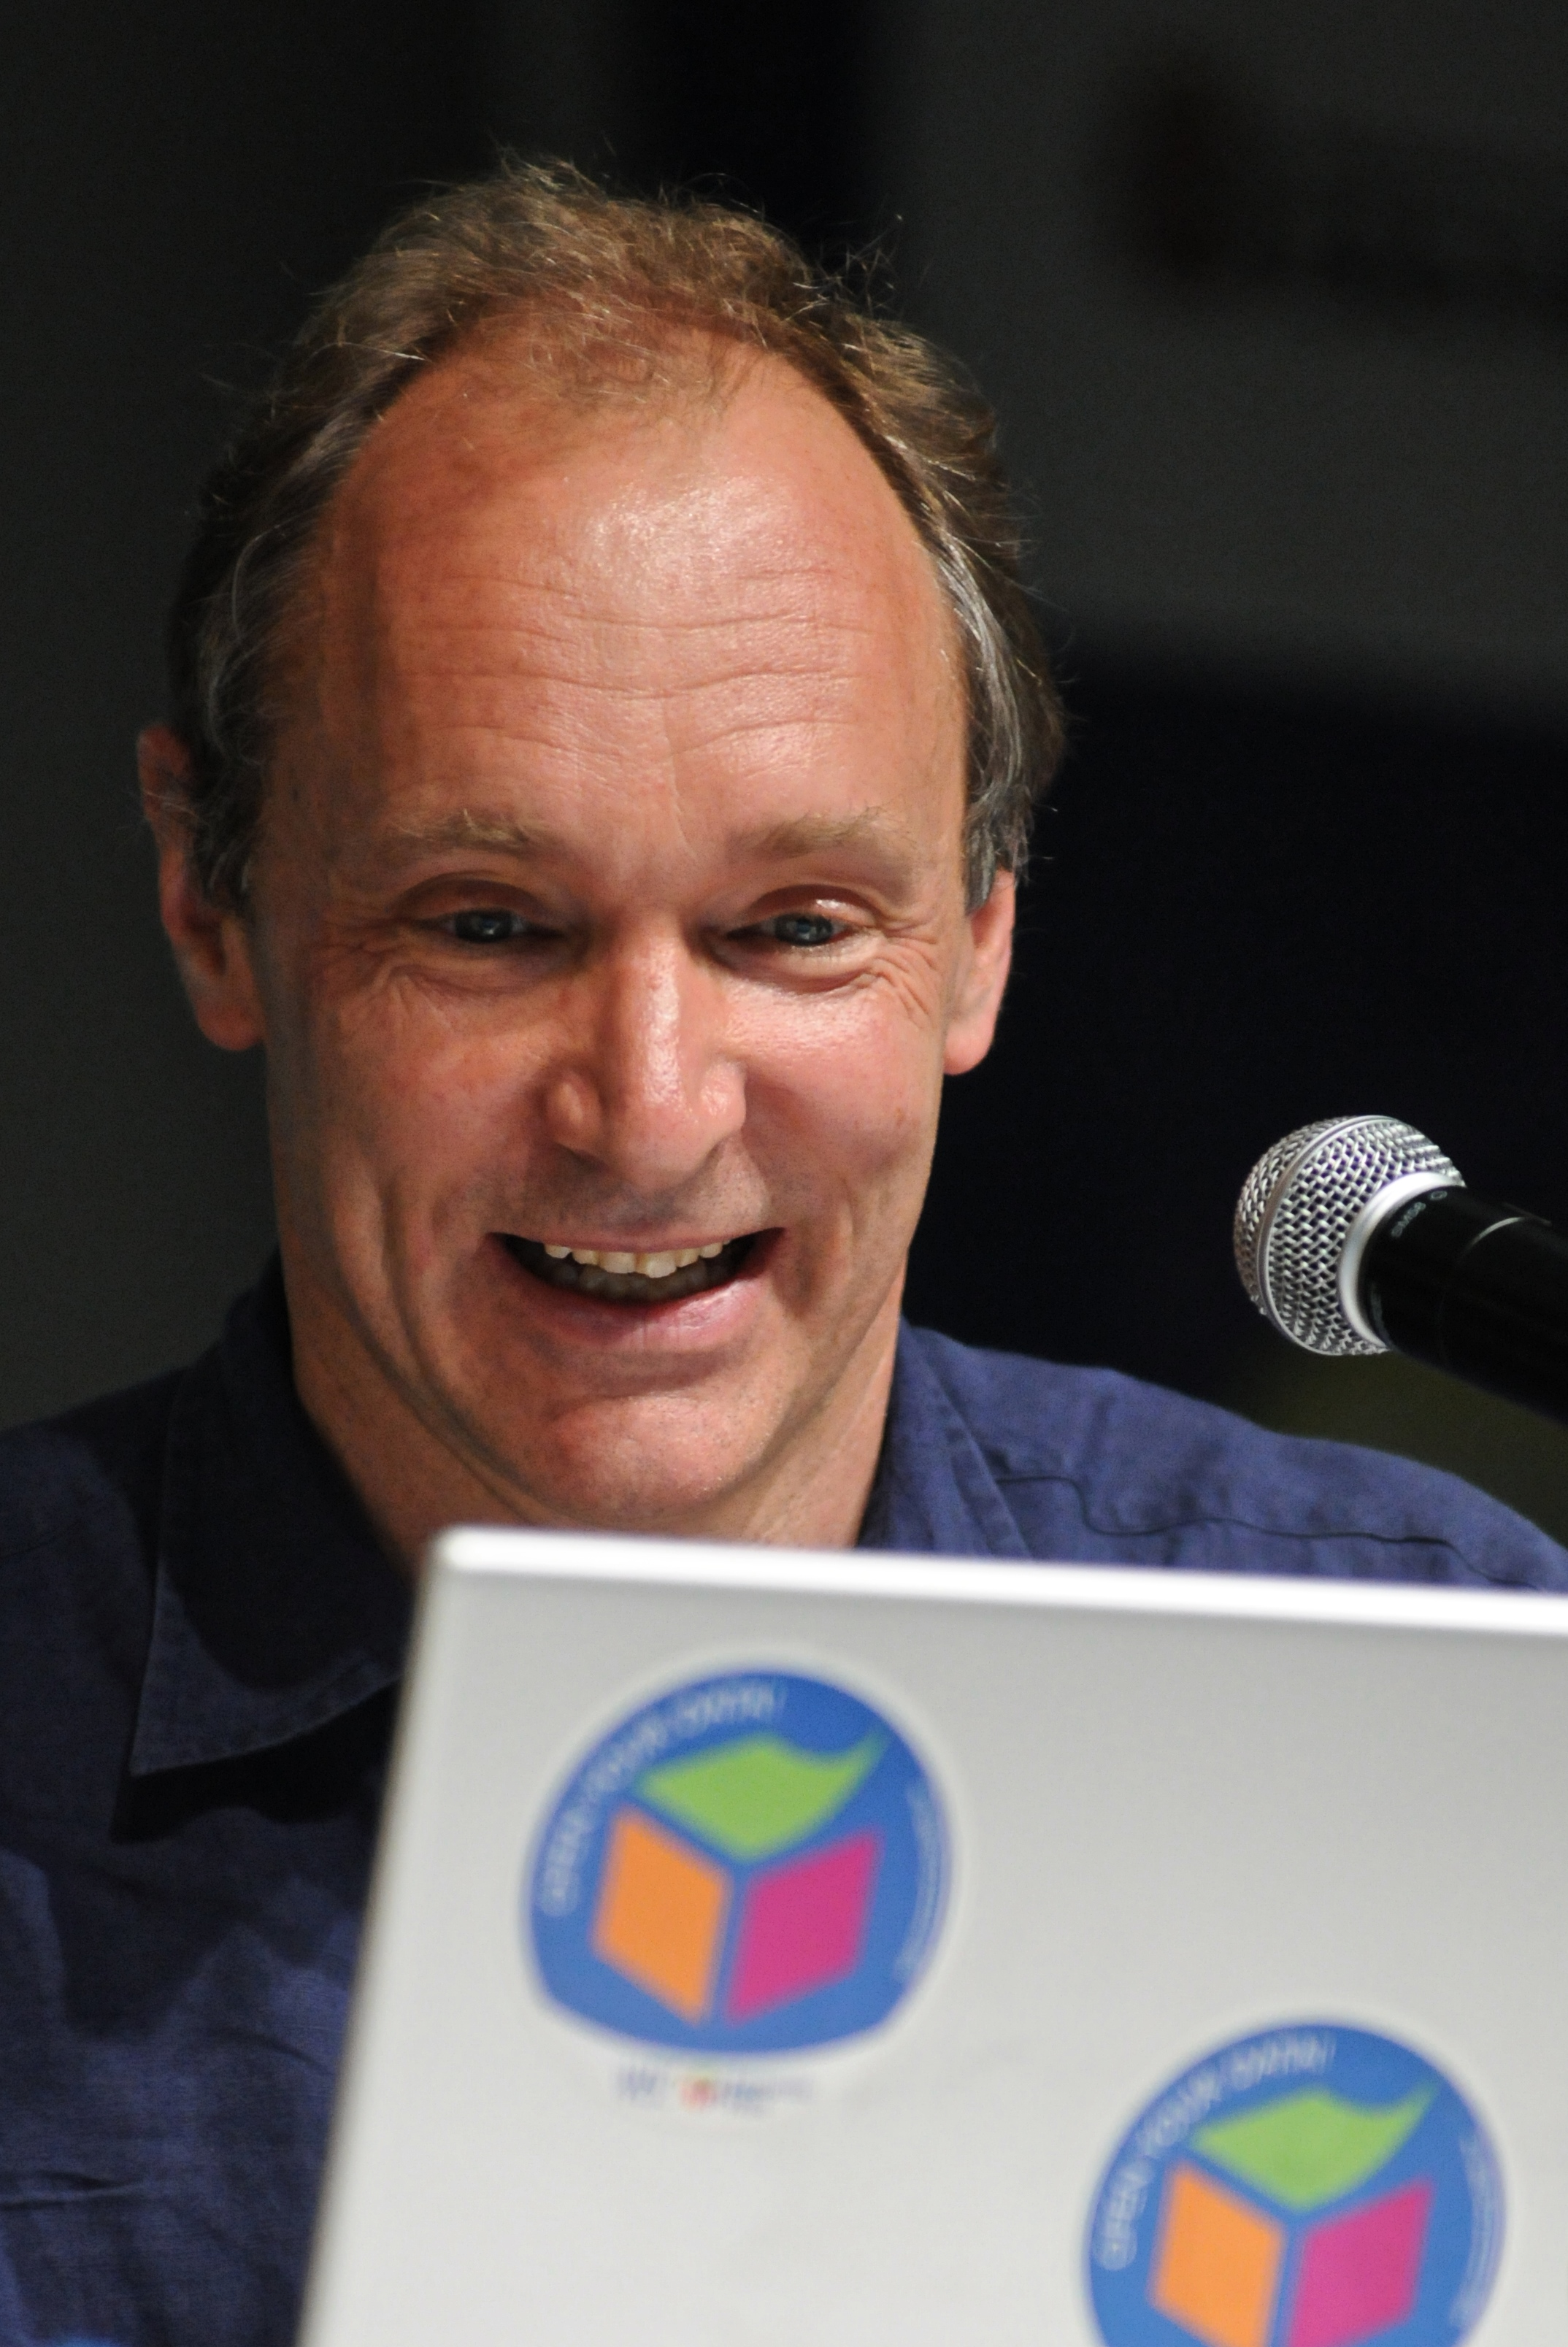 Tim Berners Lee, the inventor of the WWW